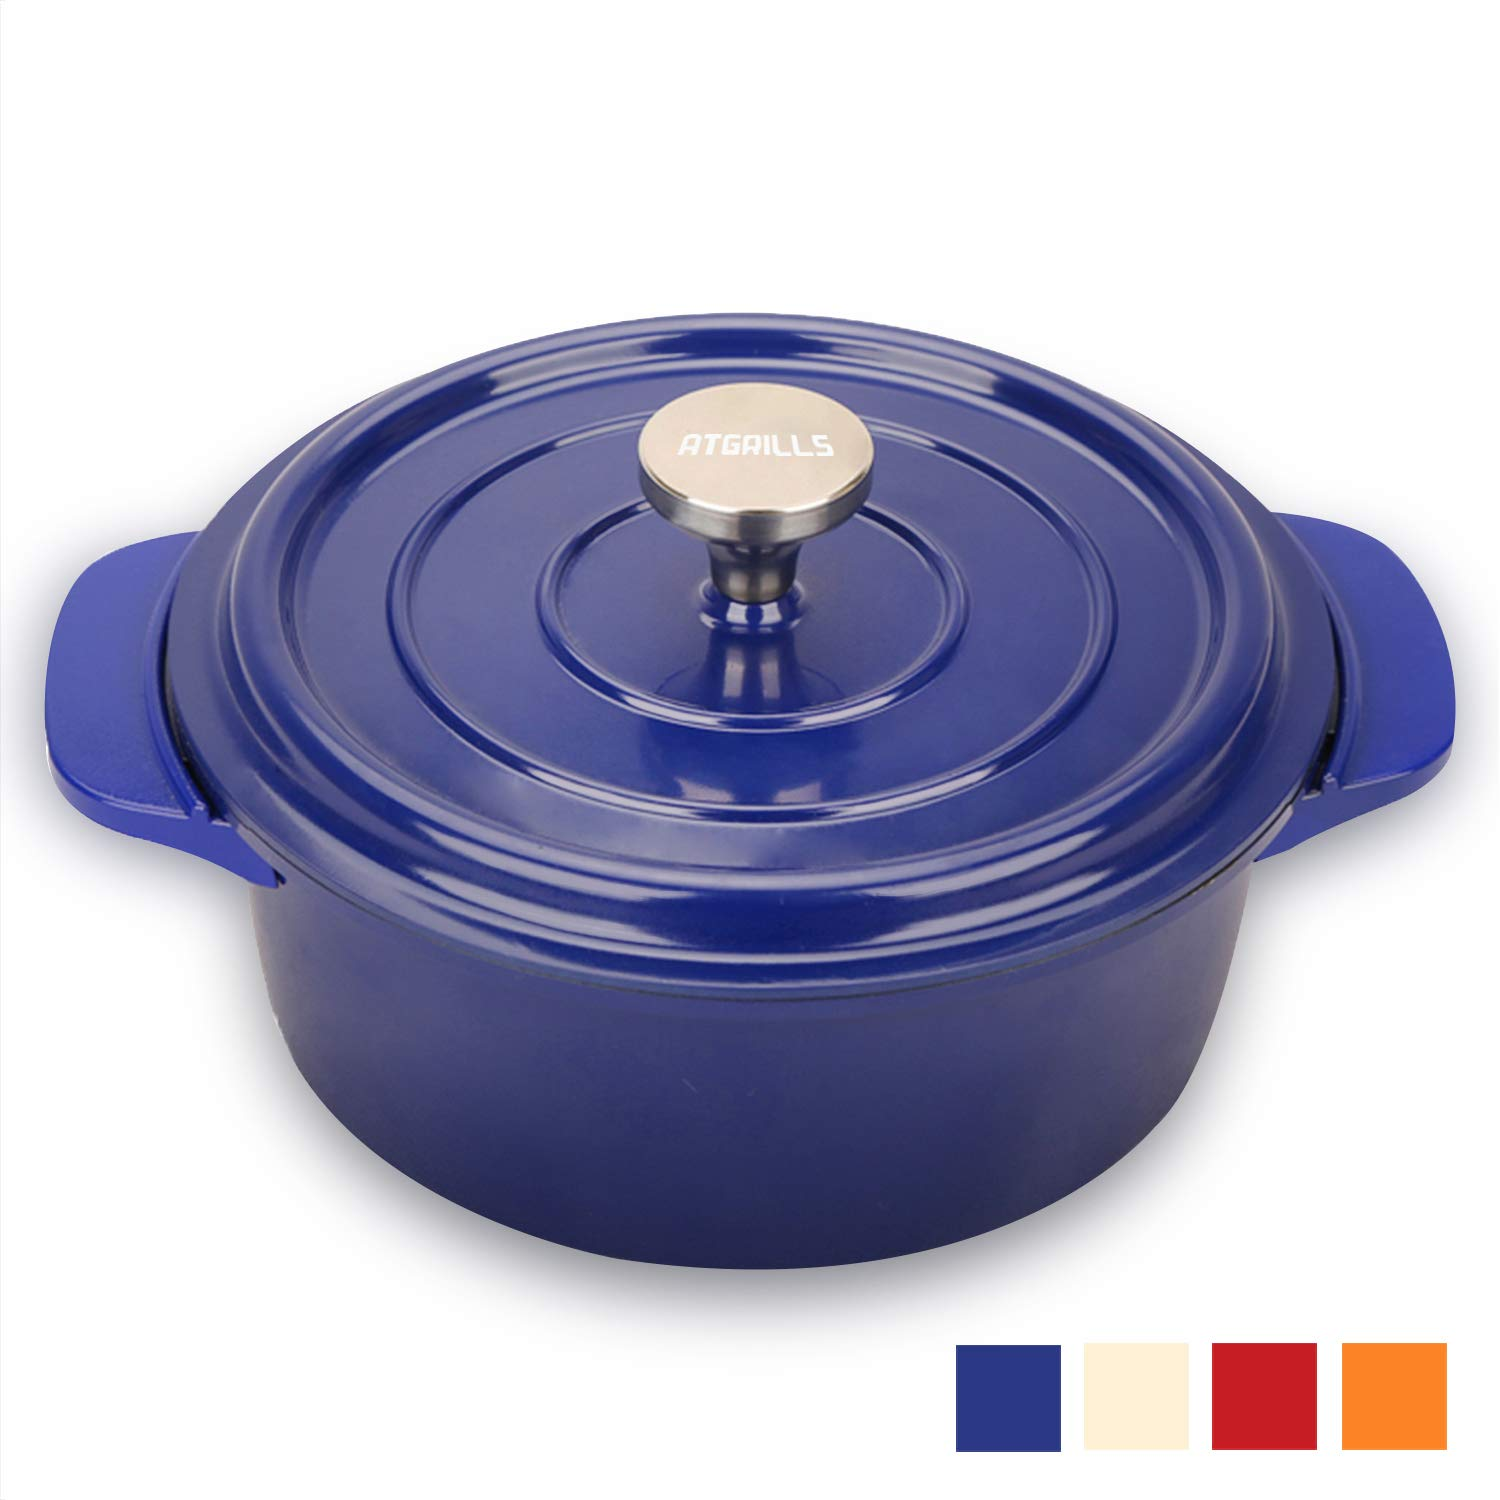 2 QT Cast Aluminum Dutch Oven/Pot with Non-stick Coating, Red/Orange/White/Blue Cookware(HP200-Blue, 2qt)